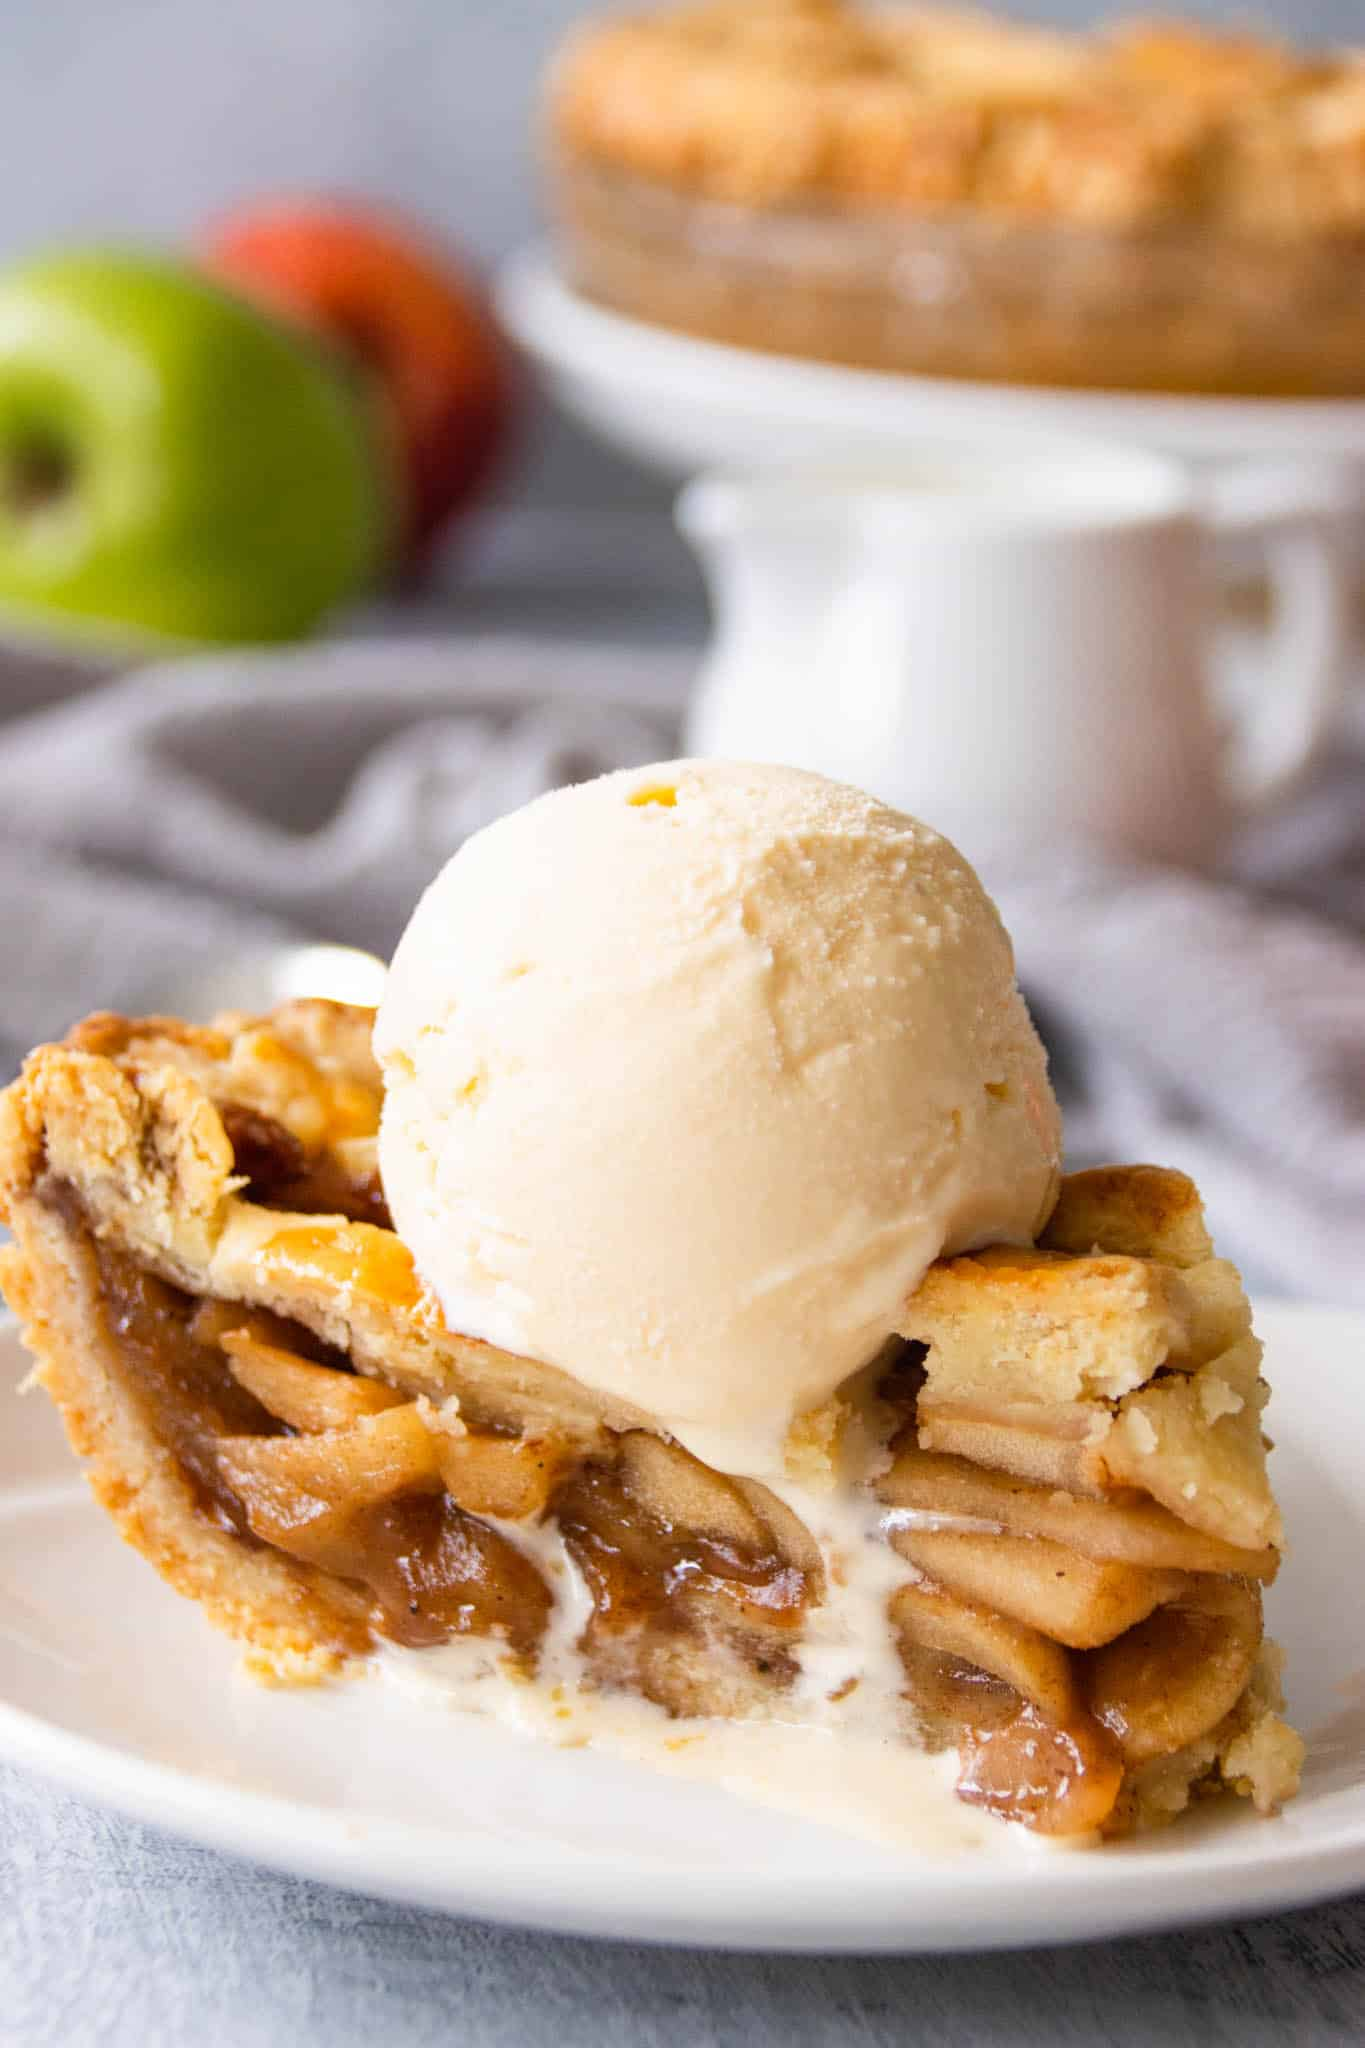 A warm slice of homemade apple pie served with a scoop of vanilla ice cream